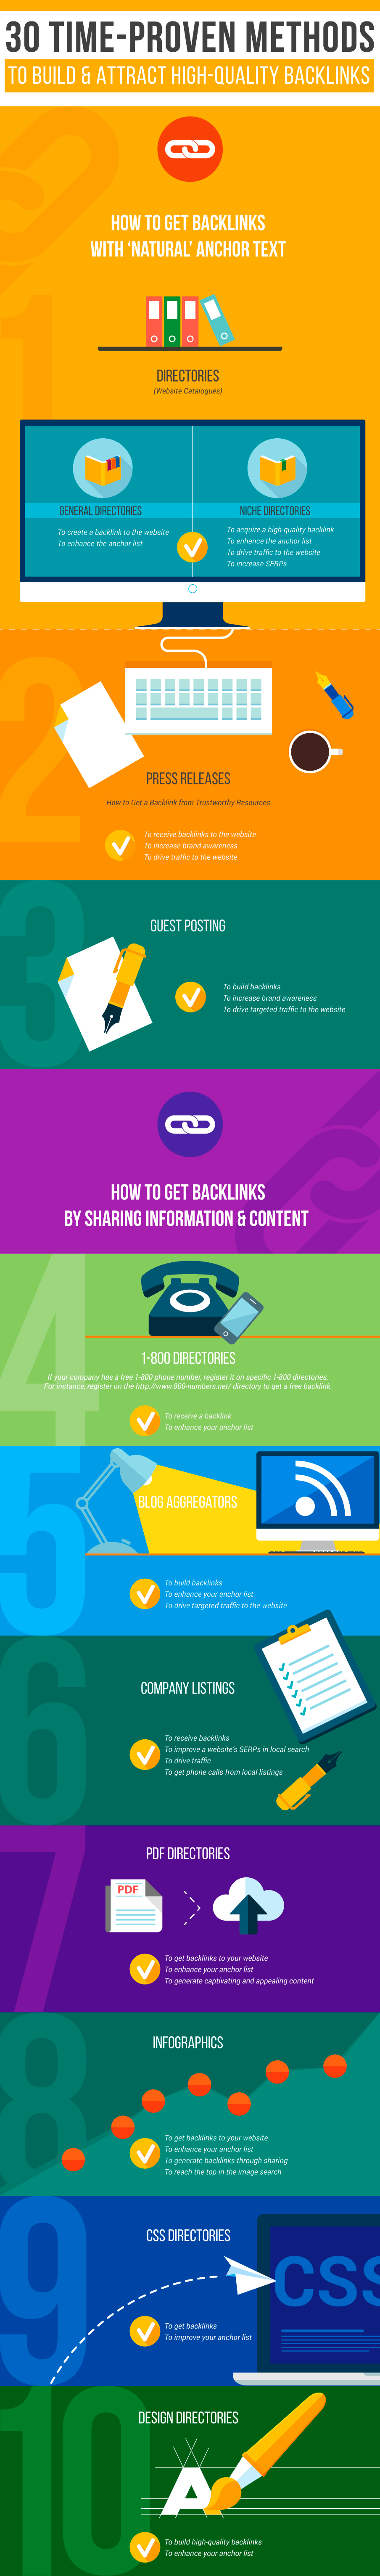 30 Time-Proven Methods to Build & Attract High-Quality Backlinks [Infographic]